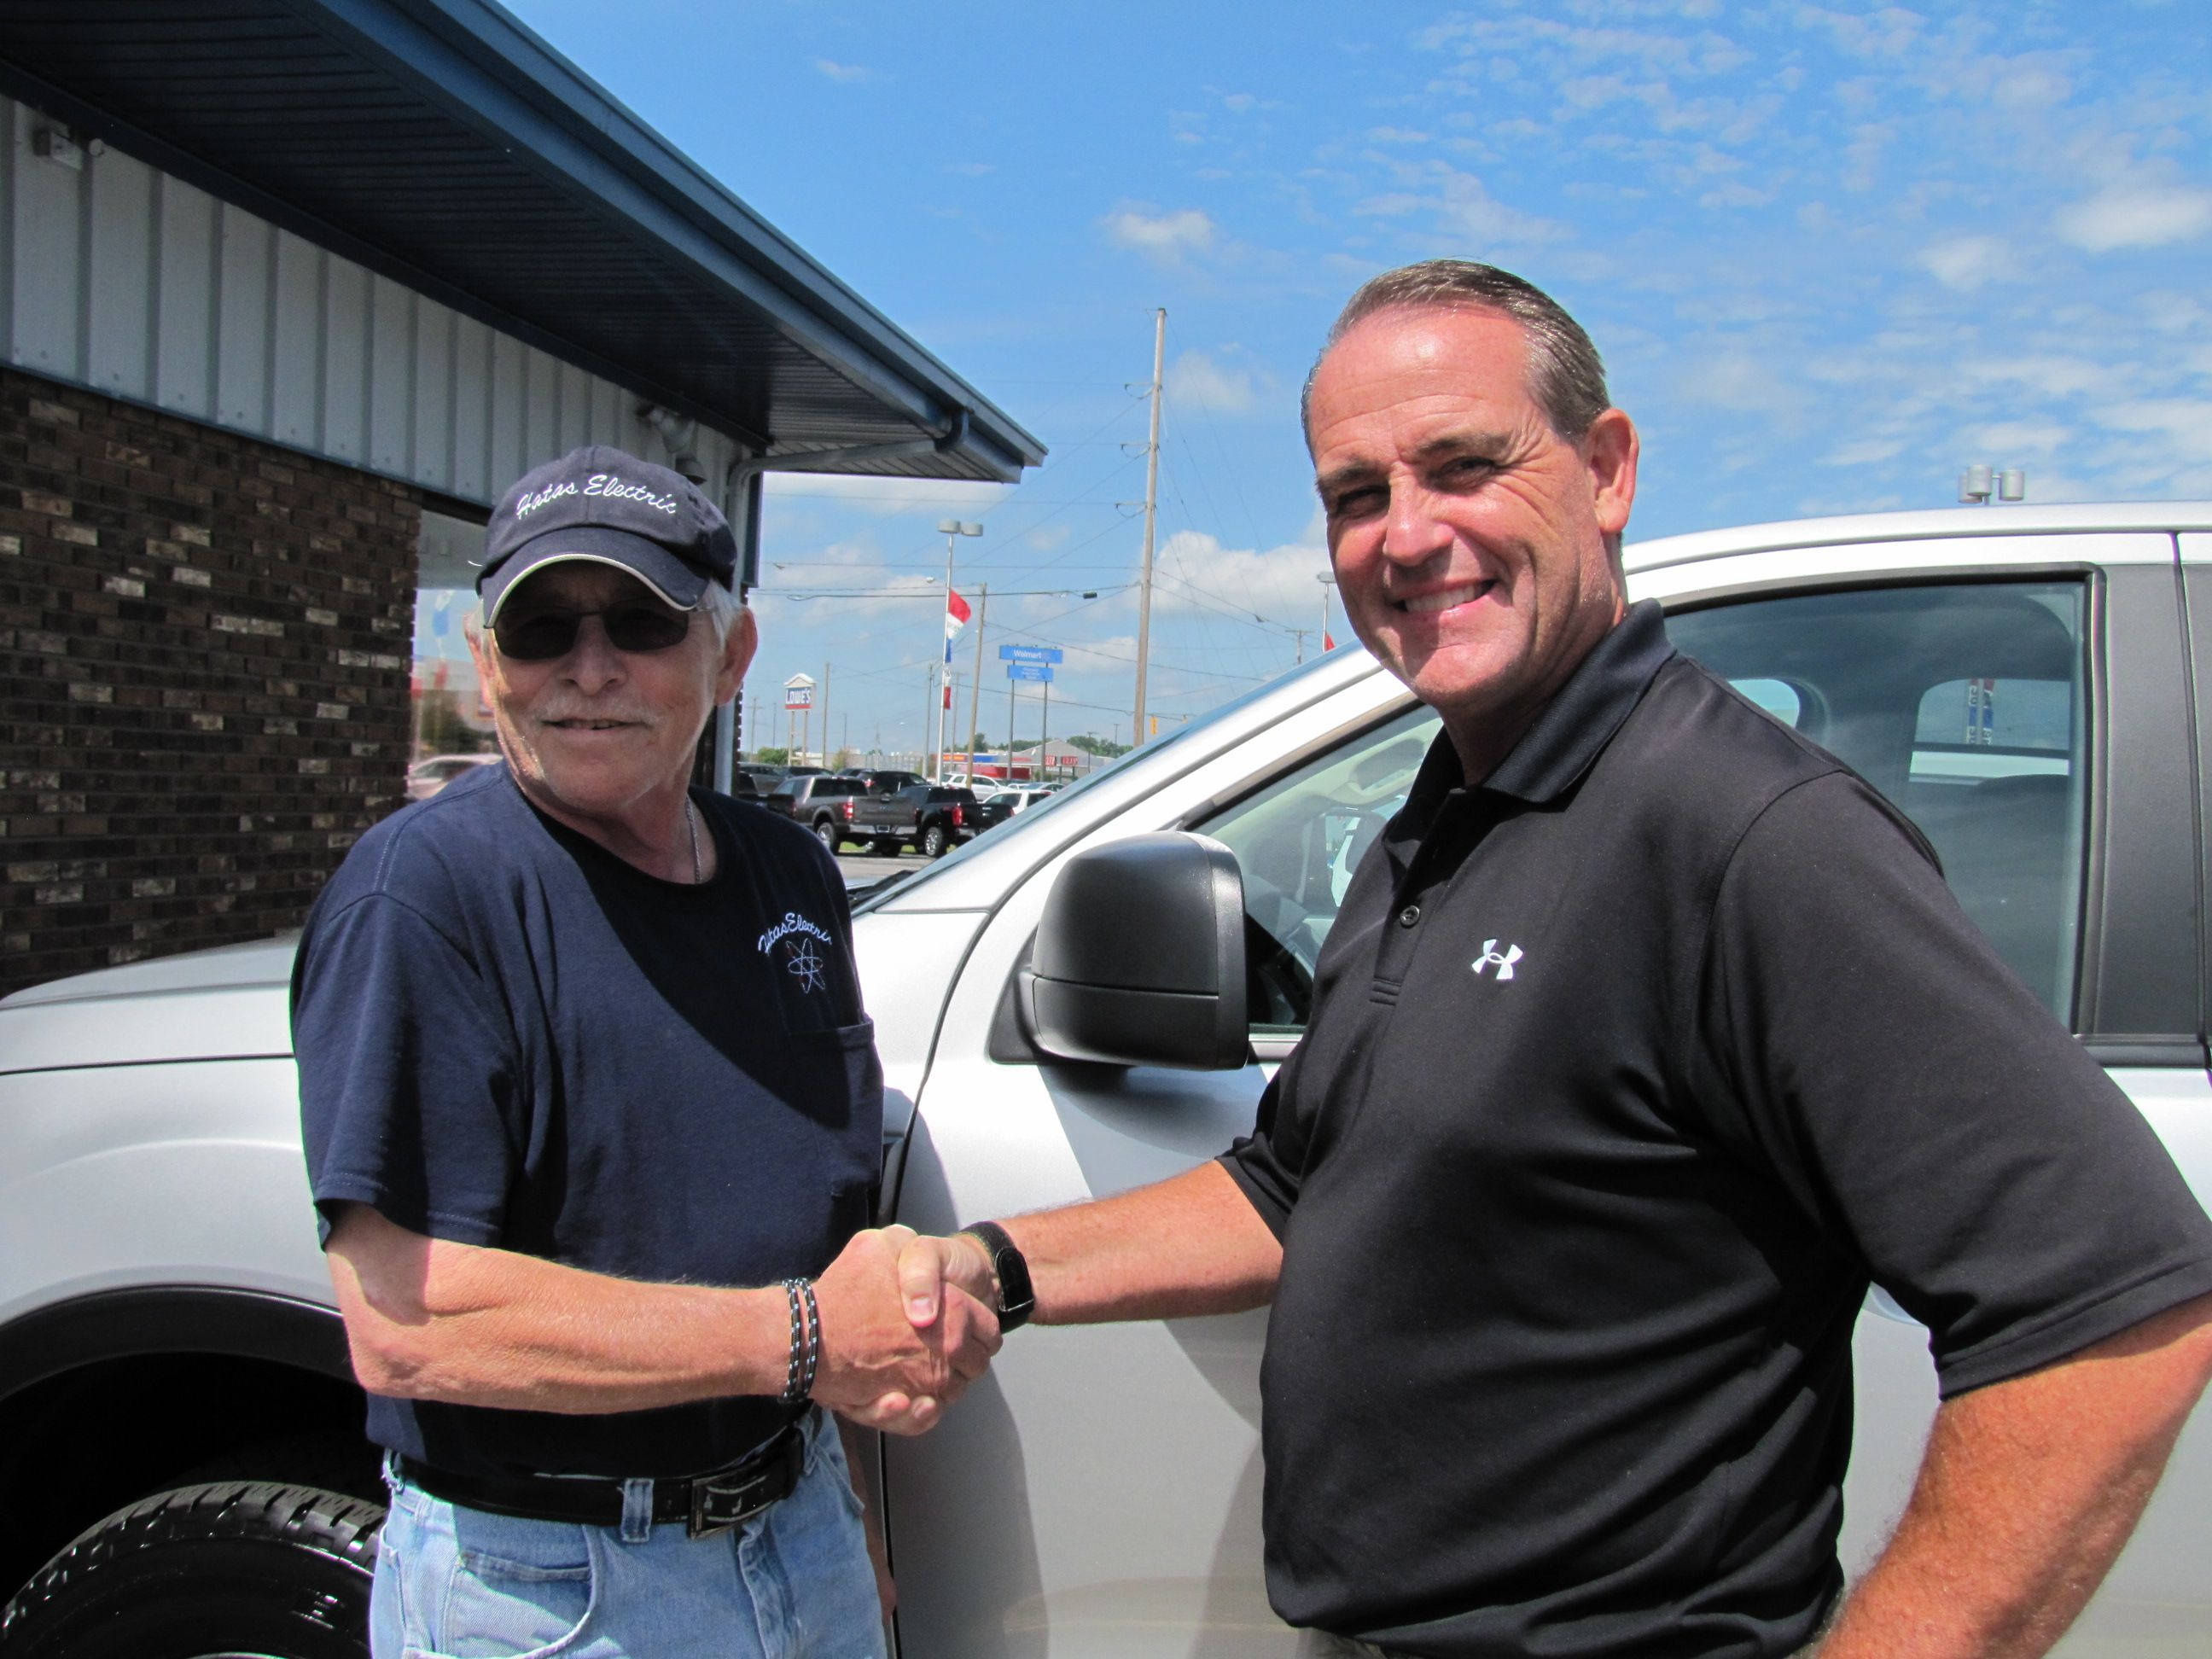 Picture David Hatas With Kelly Belcher Congratulations Dave On